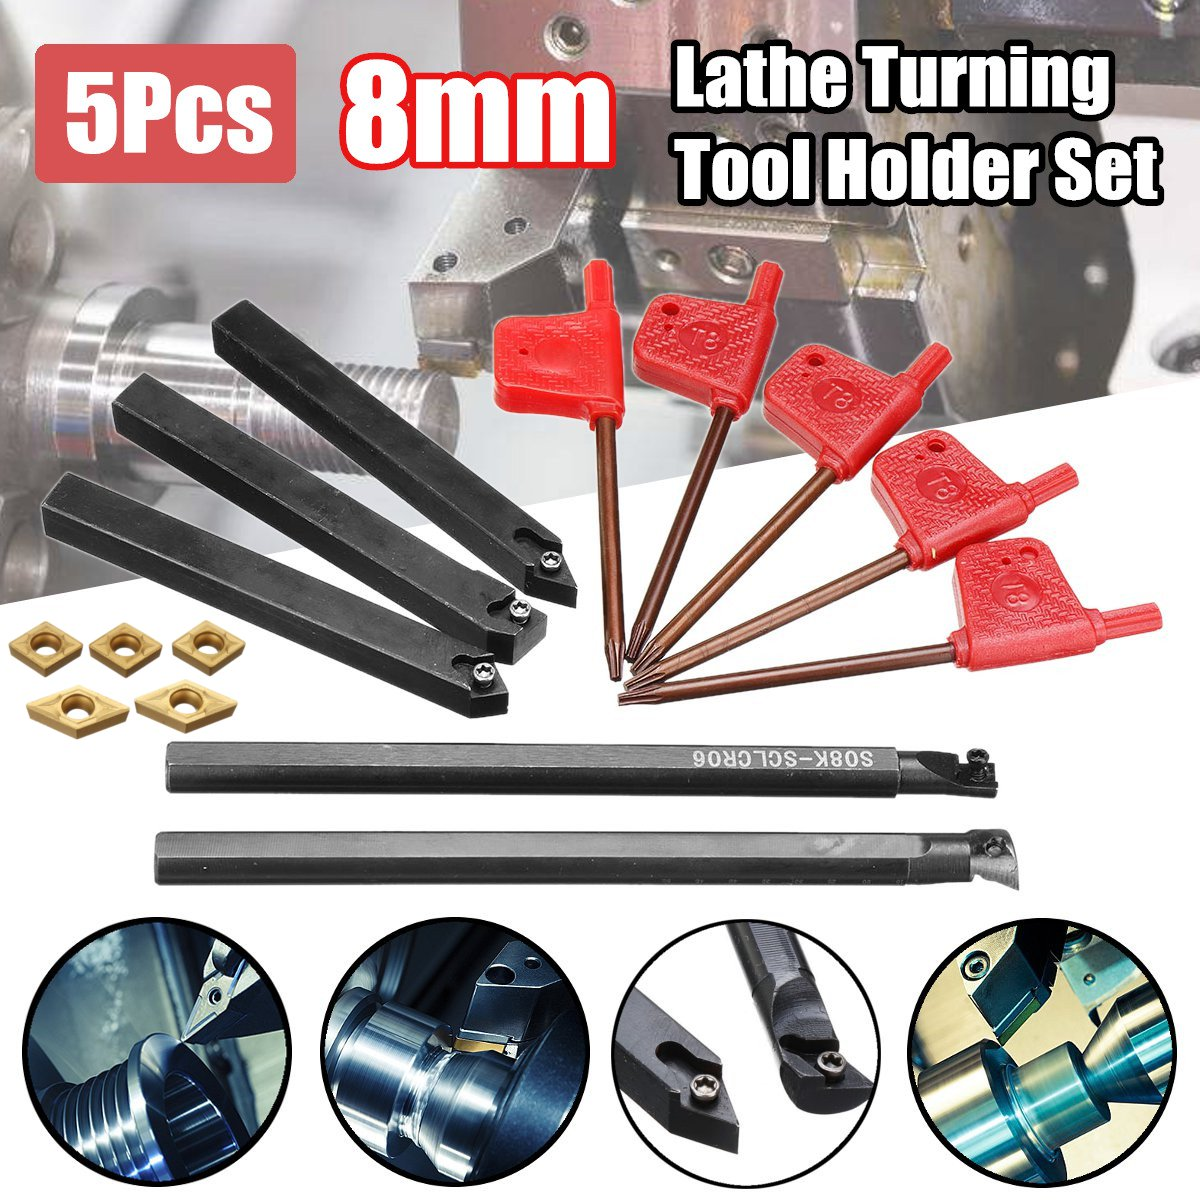 5pcs 8mm Shank Indexable Lathe Turning Tool Holder With CCMT060204 DCMT070204 Carbide Inserts For CNC Machine